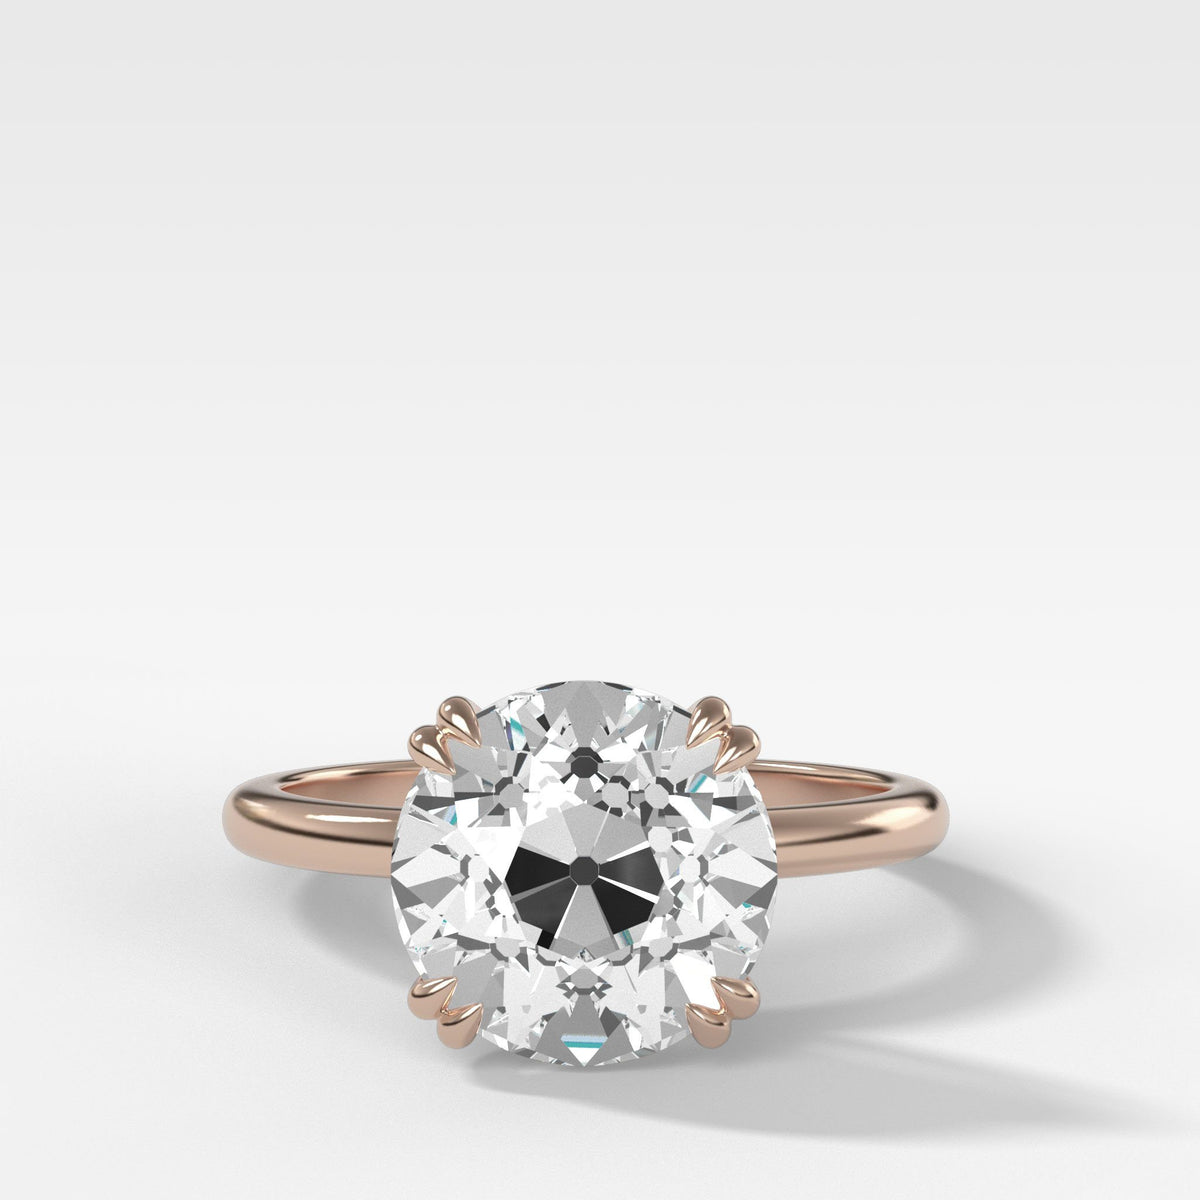 Signature Cathedral Solitaire With Old Euro Cut in Rose Gold by Good Stone